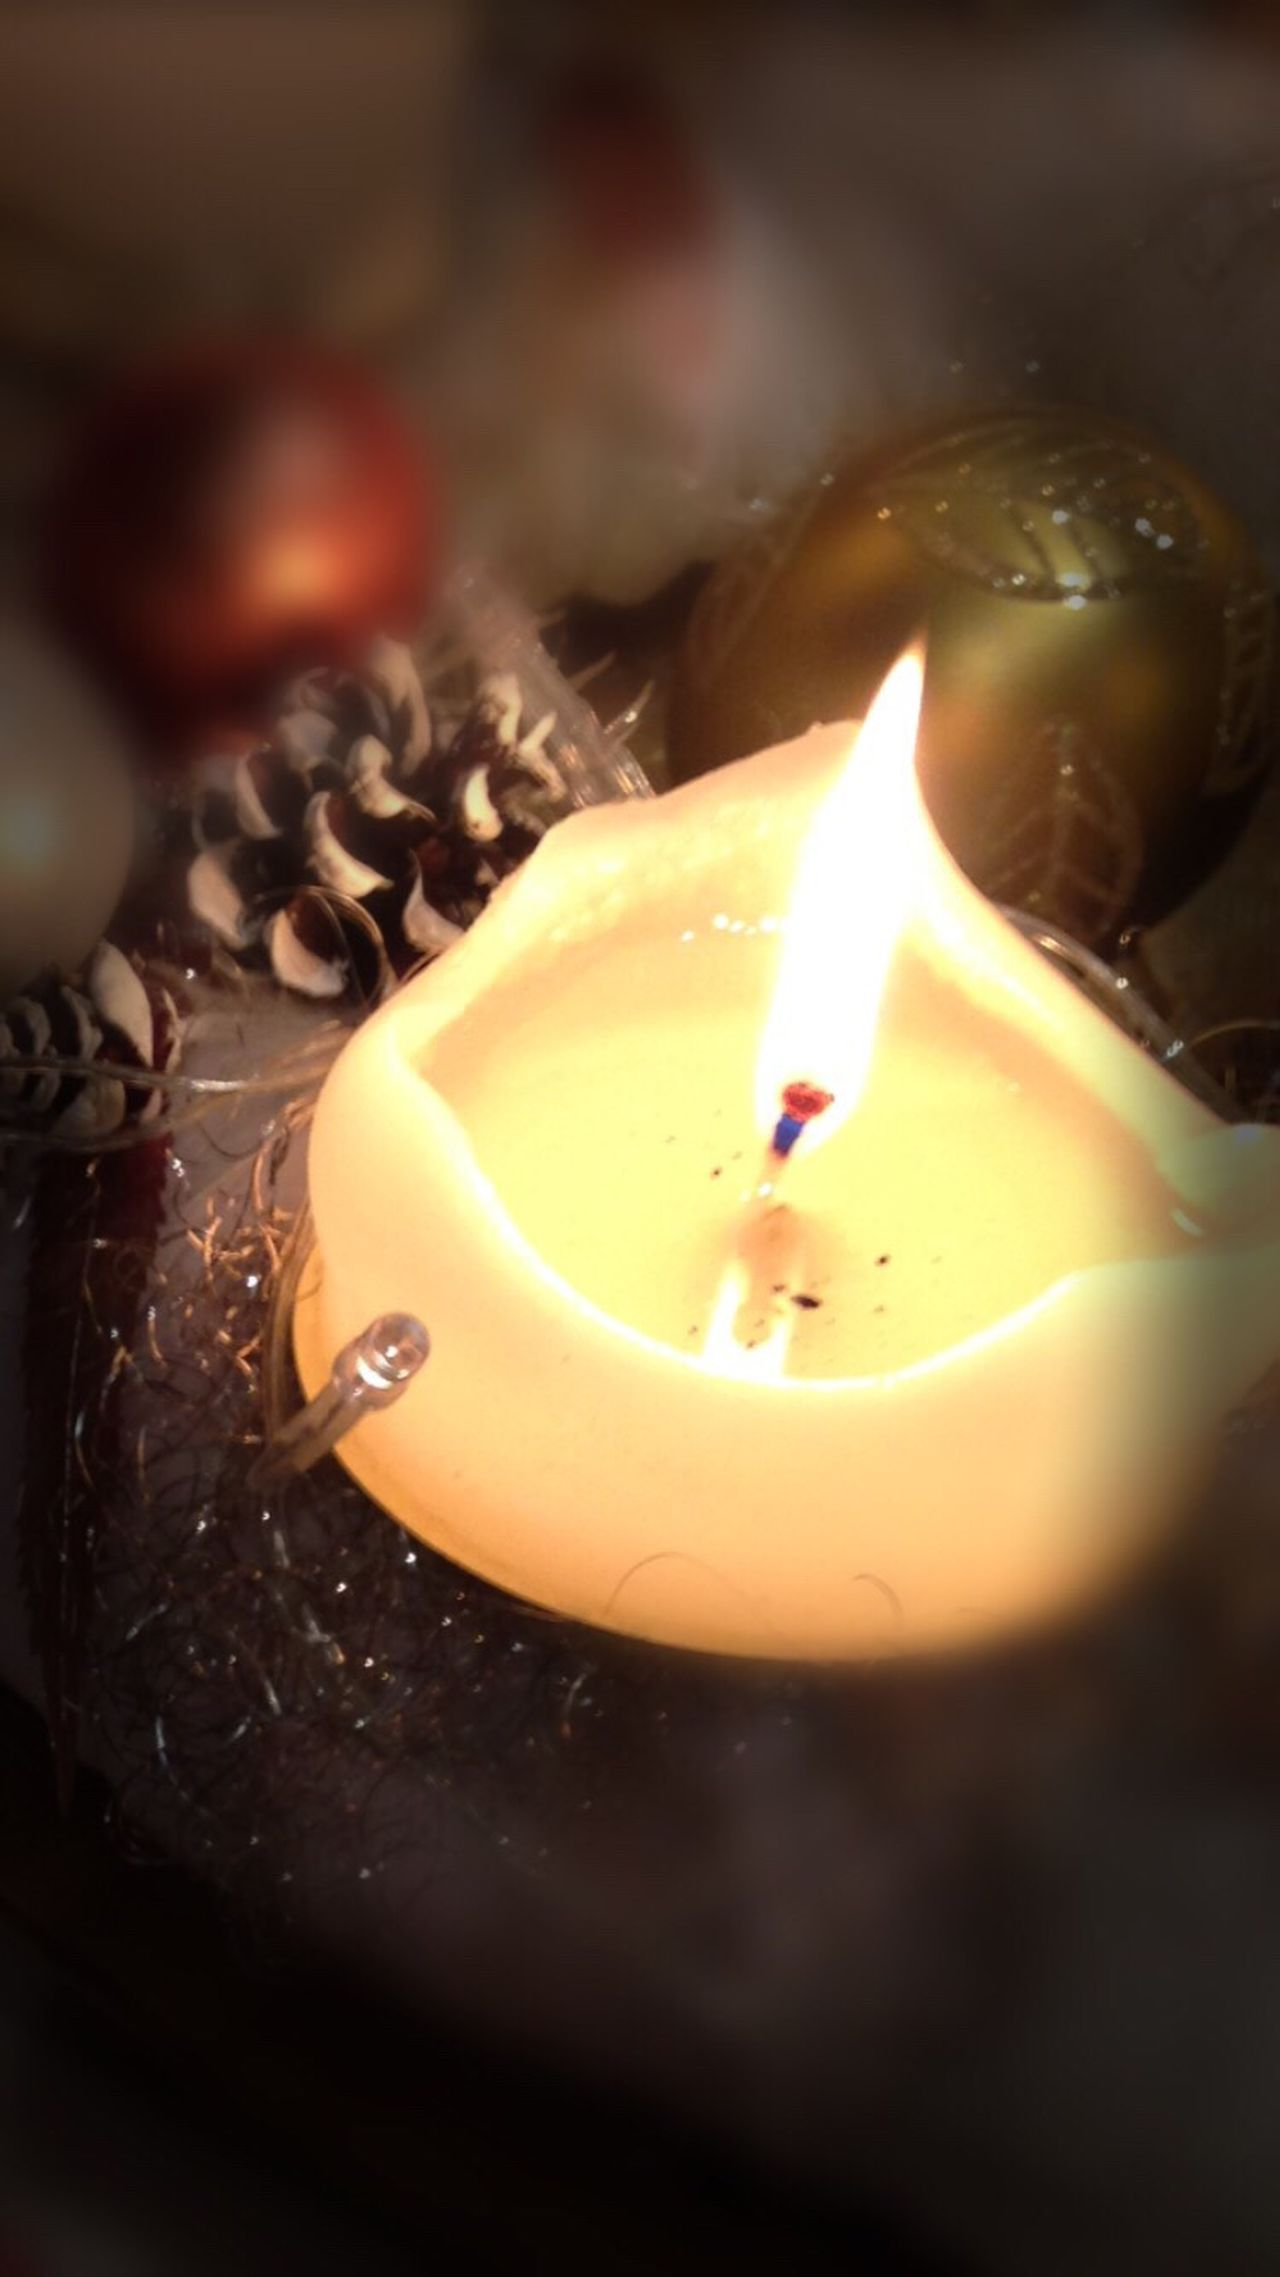 Candle Light 🕯🔥 Flame Burning Indoors  Heat - Temperature Light And Shadow Light Up Your Life Light In The Darkness Light Warmth On A Cold Day